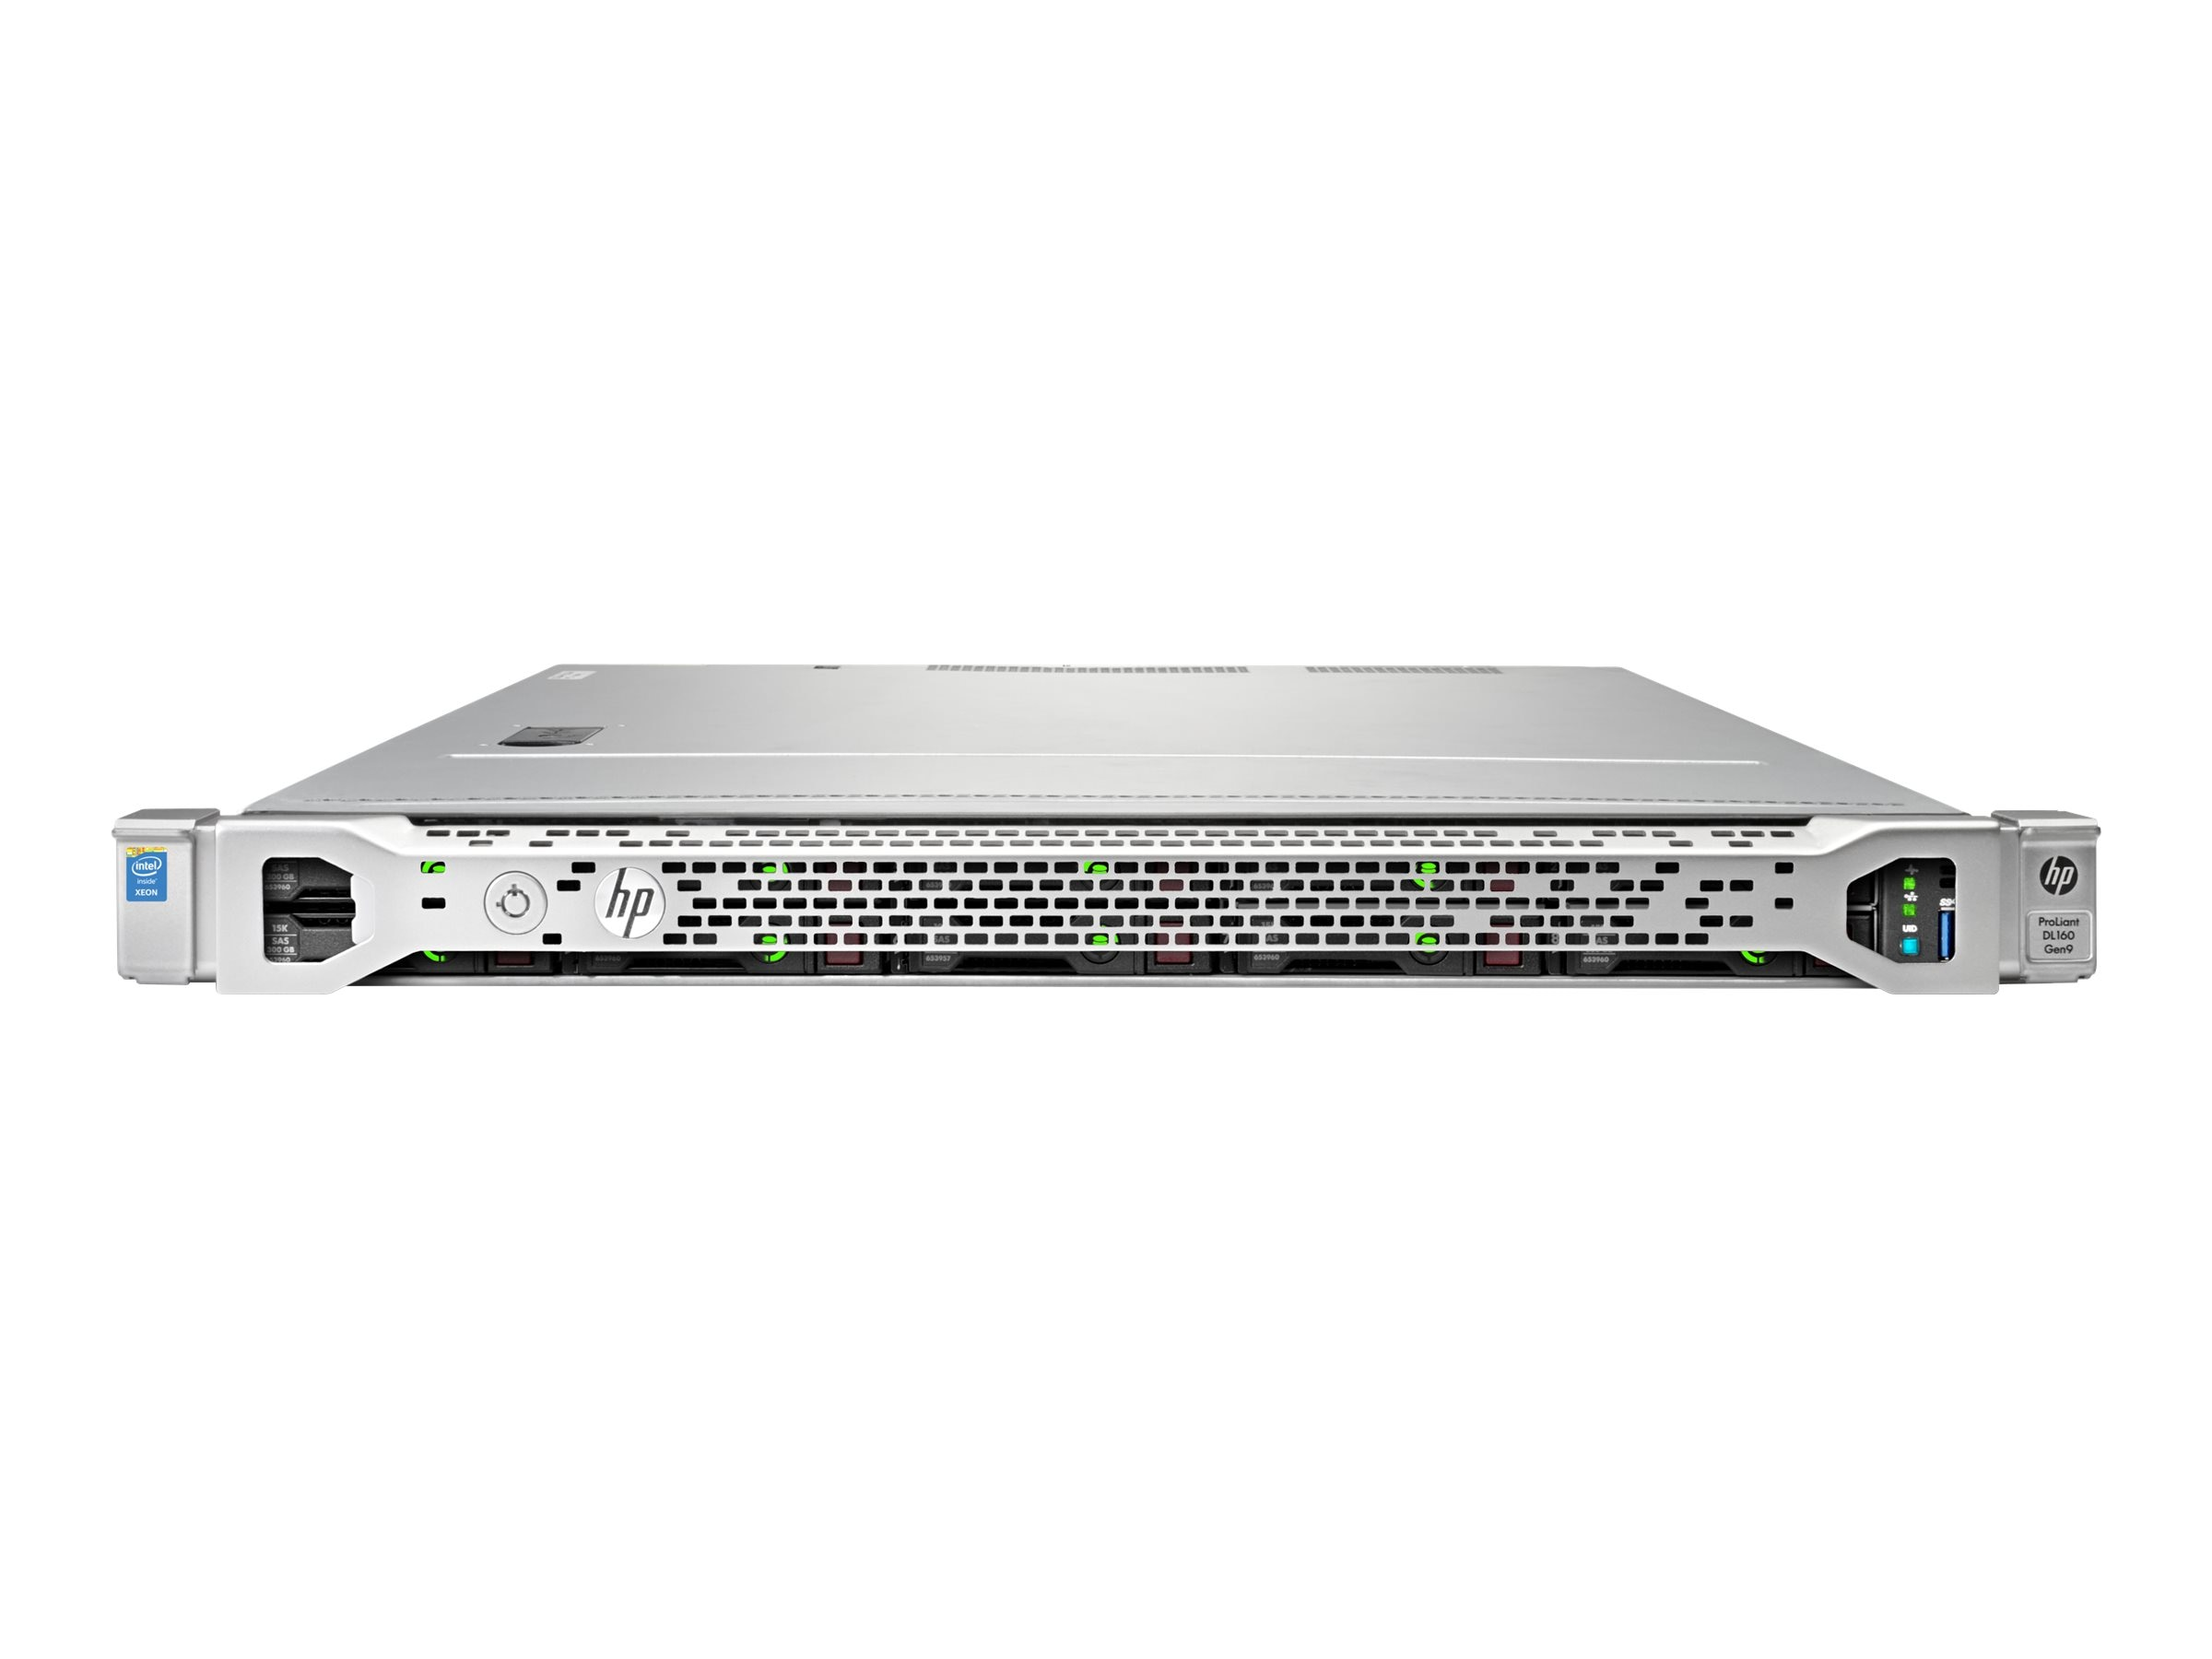 Hewlett Packard Enterprise 830577-S01 Image 2